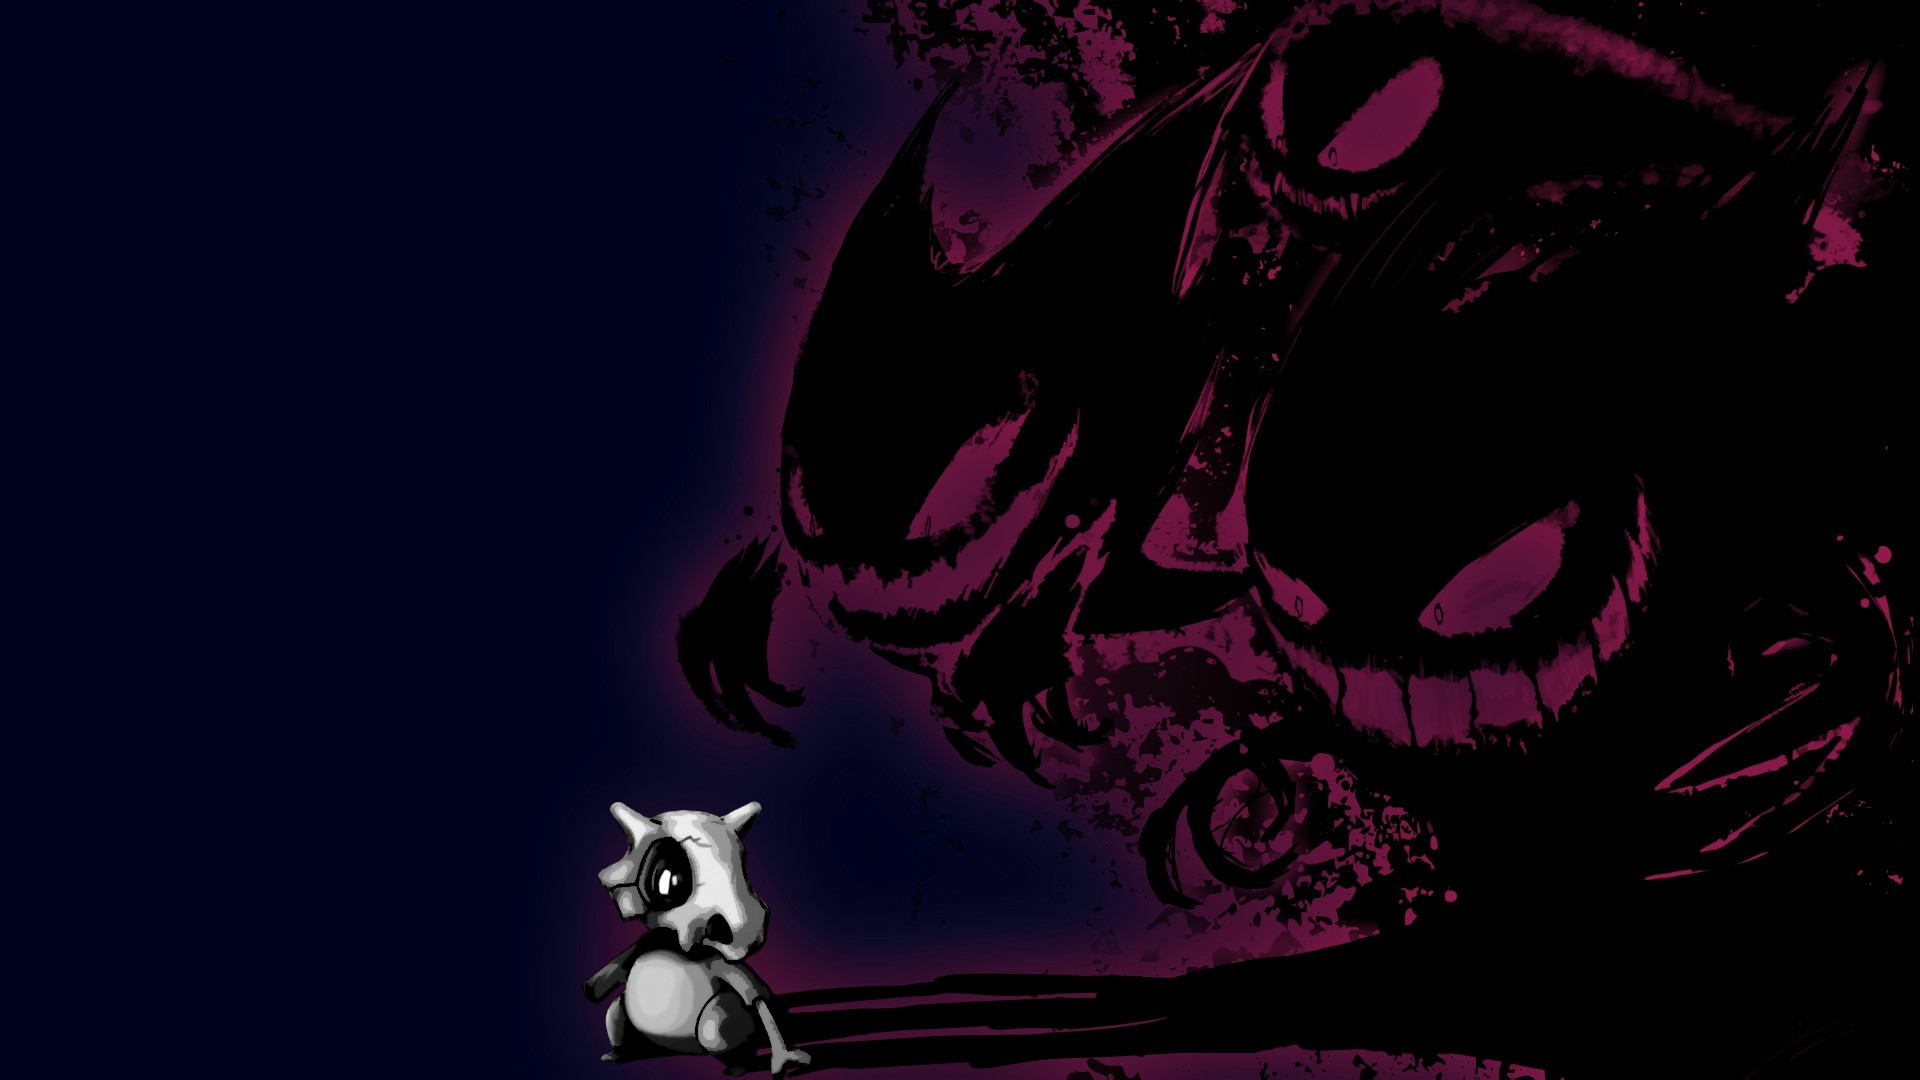 Res: 1920x1080, Cubone baby wallpaper [] [x-post from r/wallpapers] ...